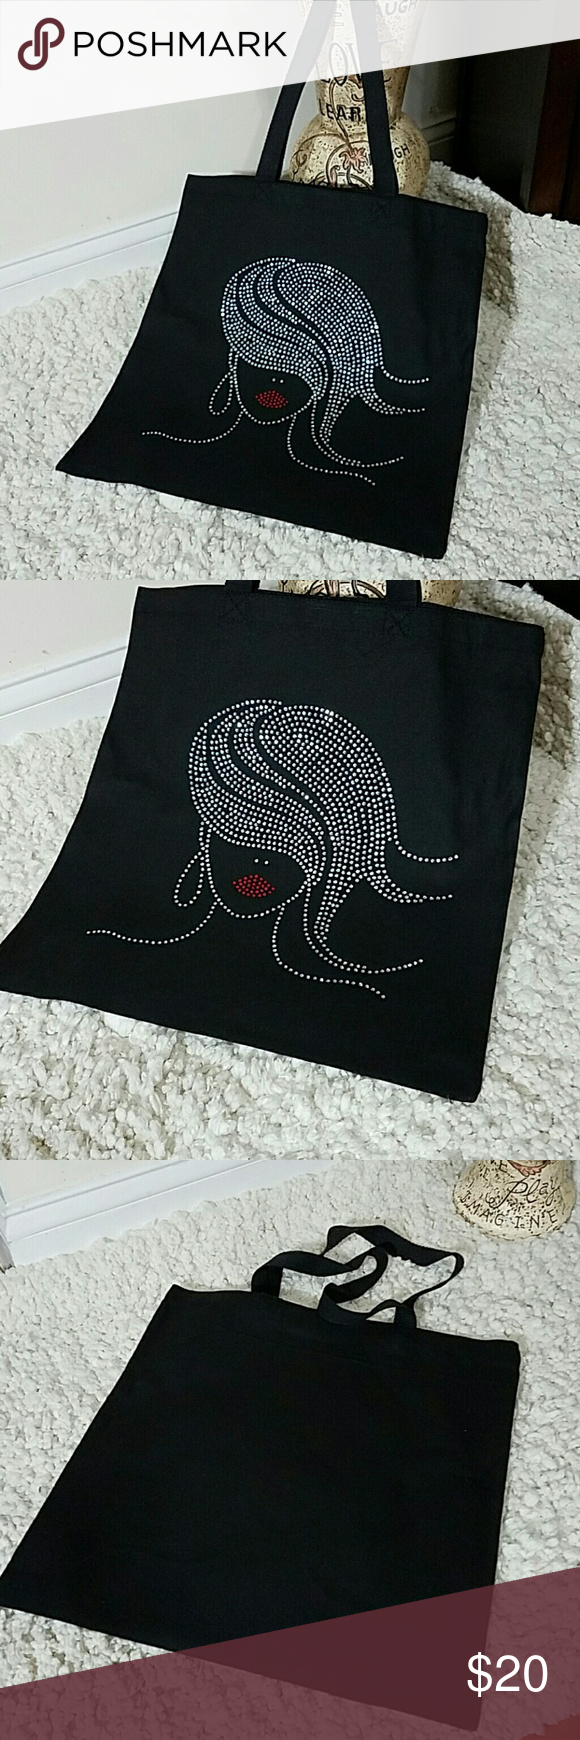 Glam Girl Rhinestone Canvas  Tote Adorable, reusable canvas tote. Perfect for carrying extras or light shopping. Great for spring/ summer. 100% cotton  15.75in x 15in Boutique Bags Totes